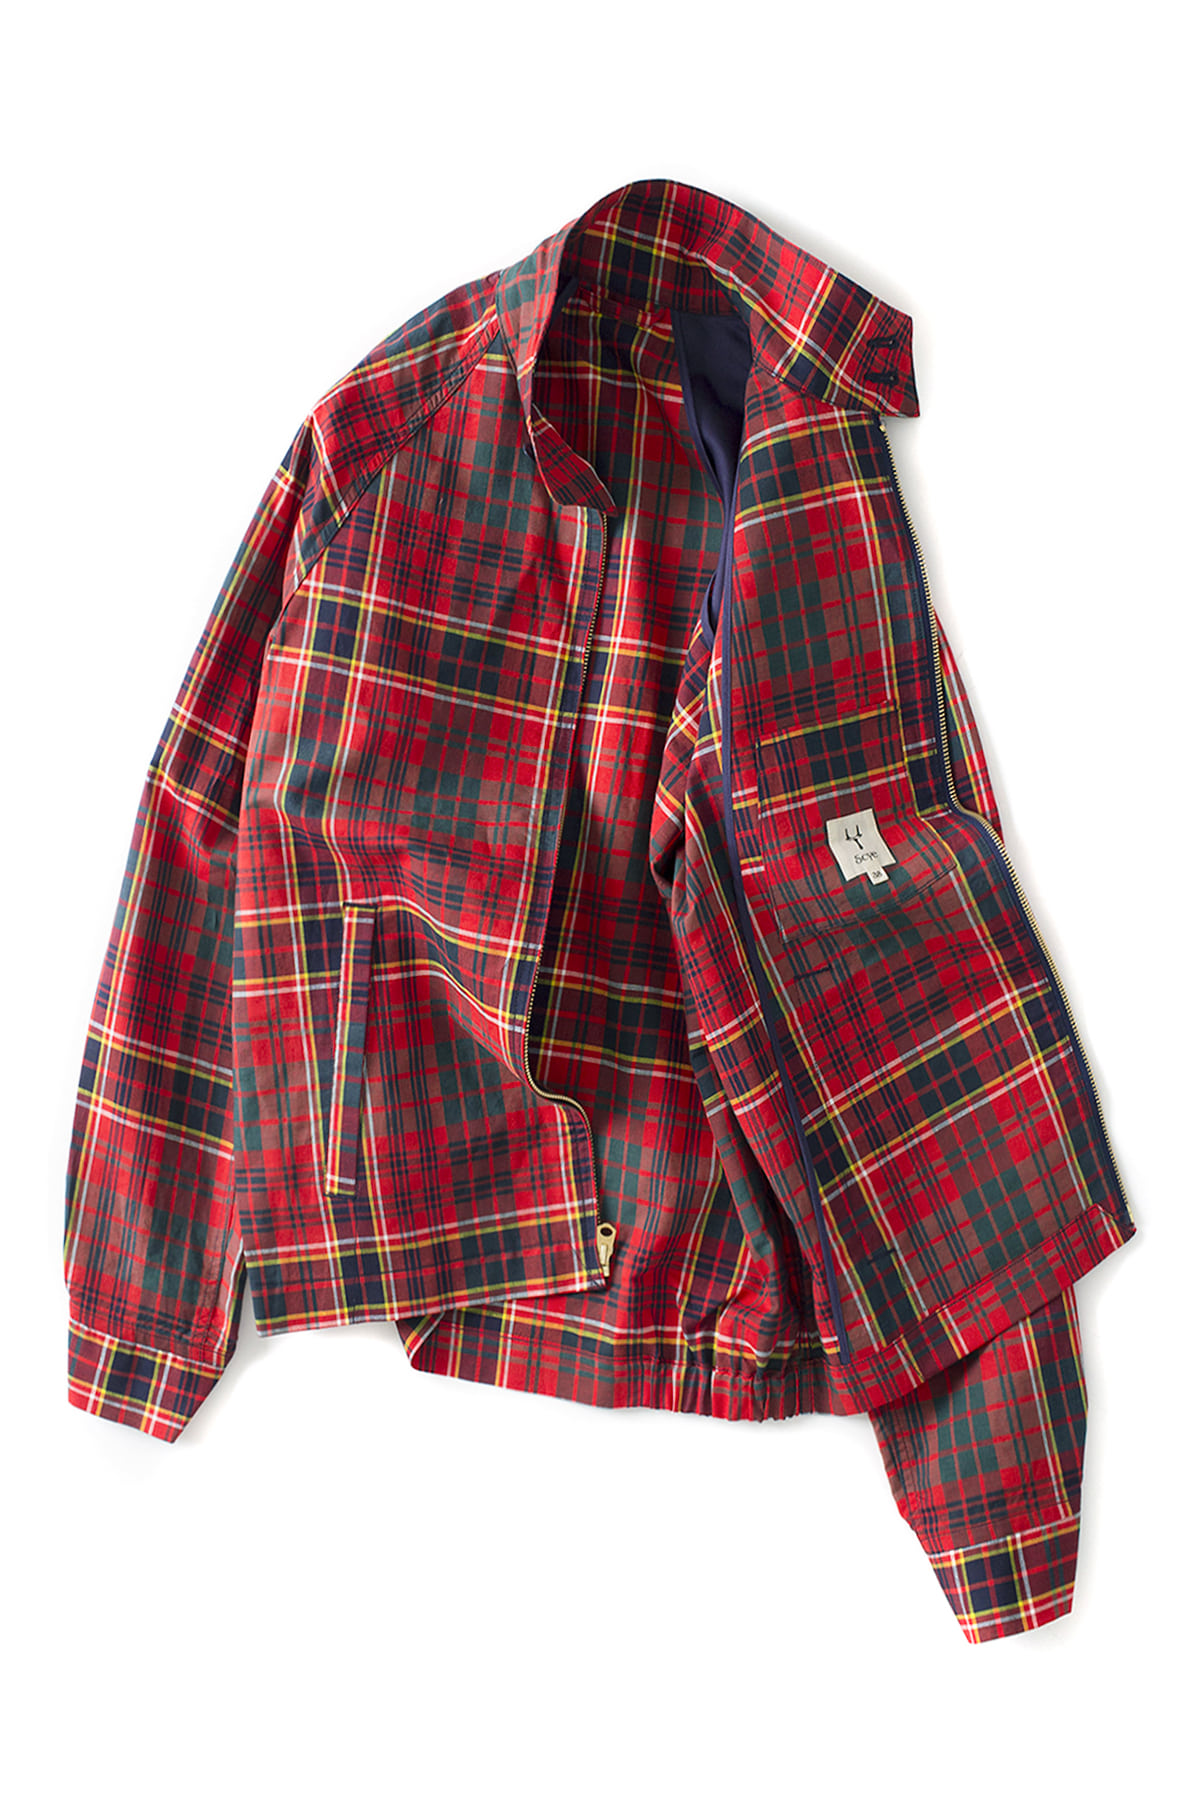 Scye : Cotton And Linen Plaid Harrington Jacket (Red)